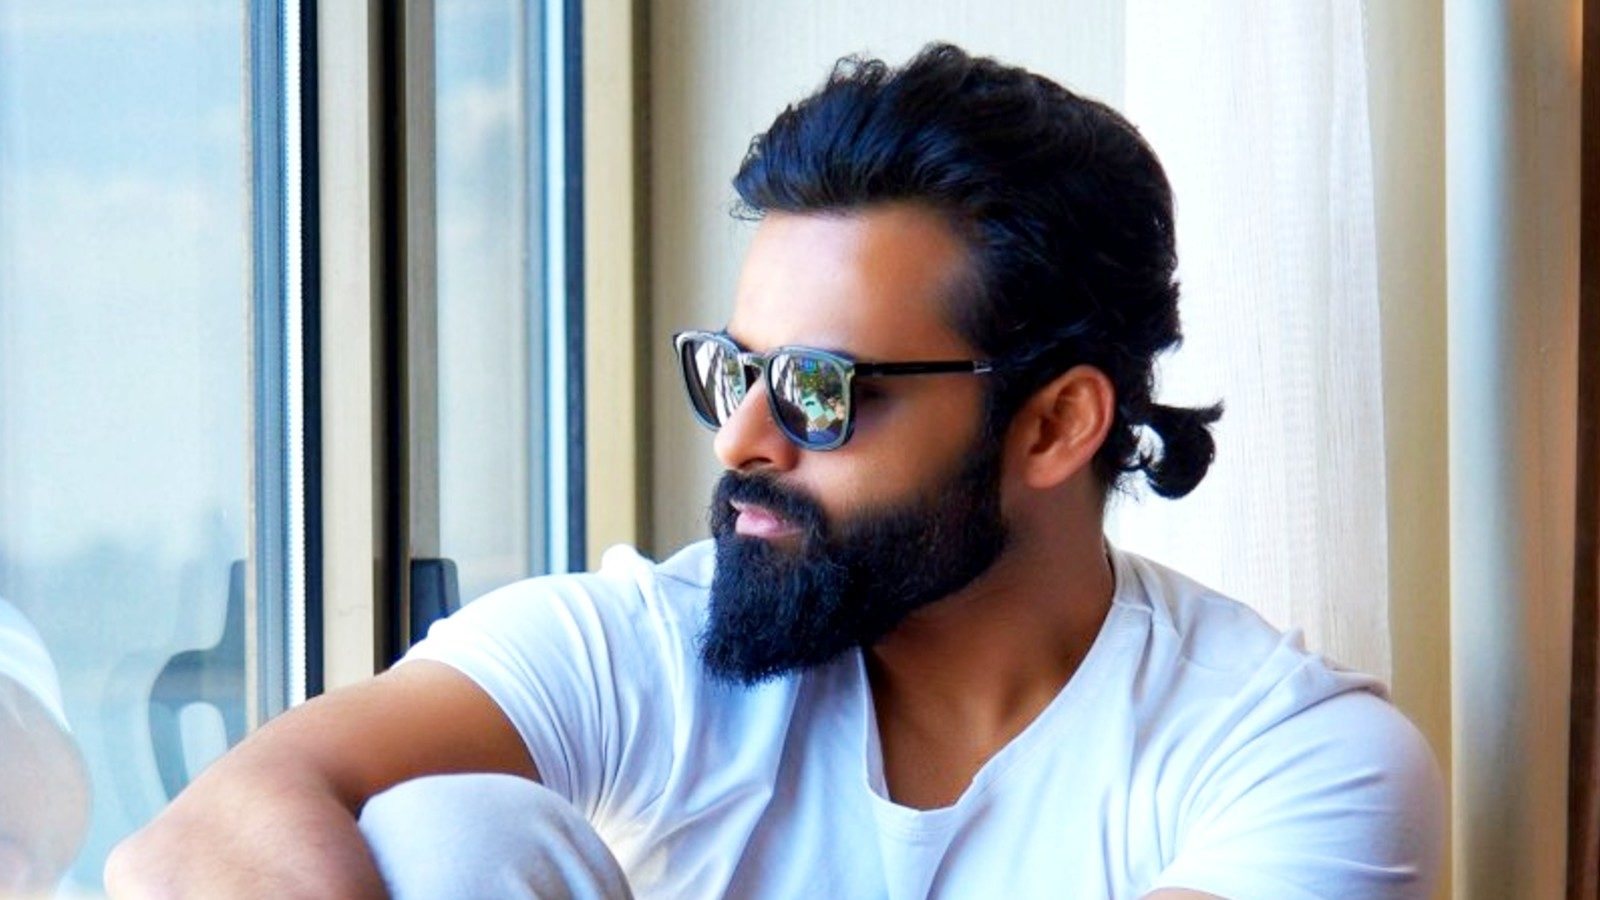 Sai Dharam Tej accident update ghmc fined 1 lakh rupee to Aurobindo Constructions bhojpuri South raya - Stuff Unknown